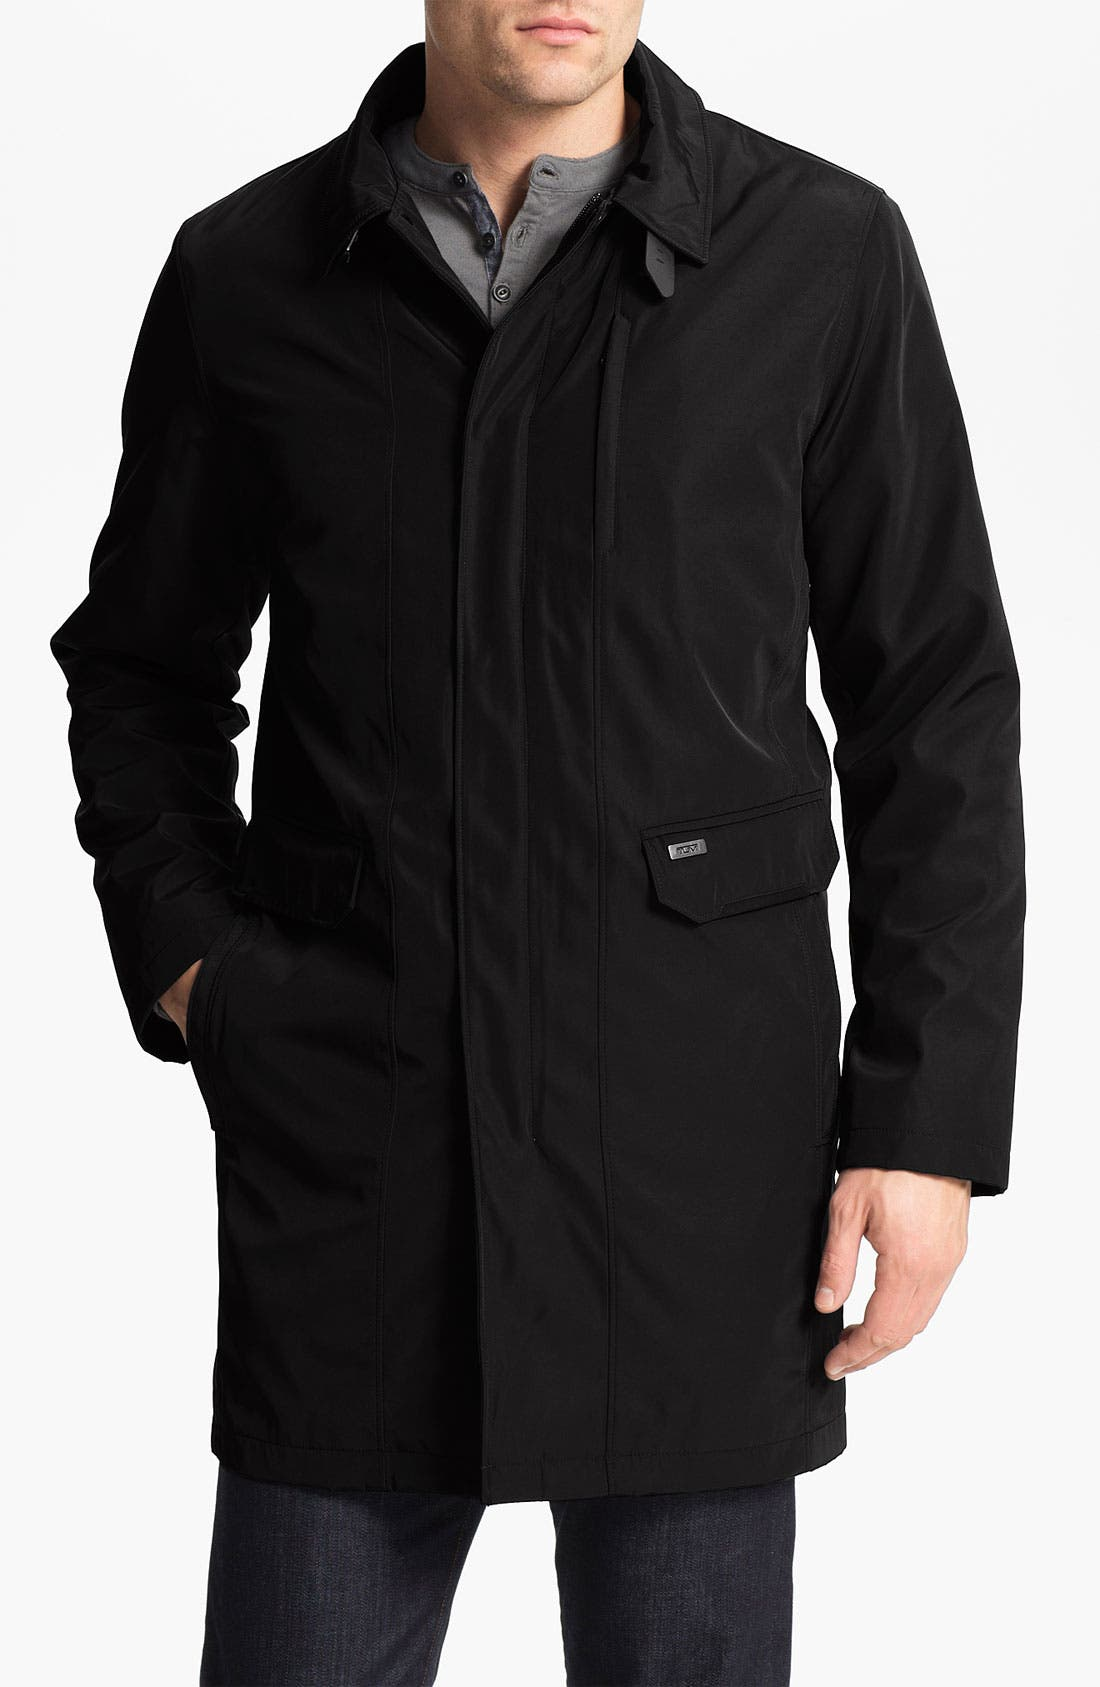 Main Image - Tumi 'Commuter' Jacket